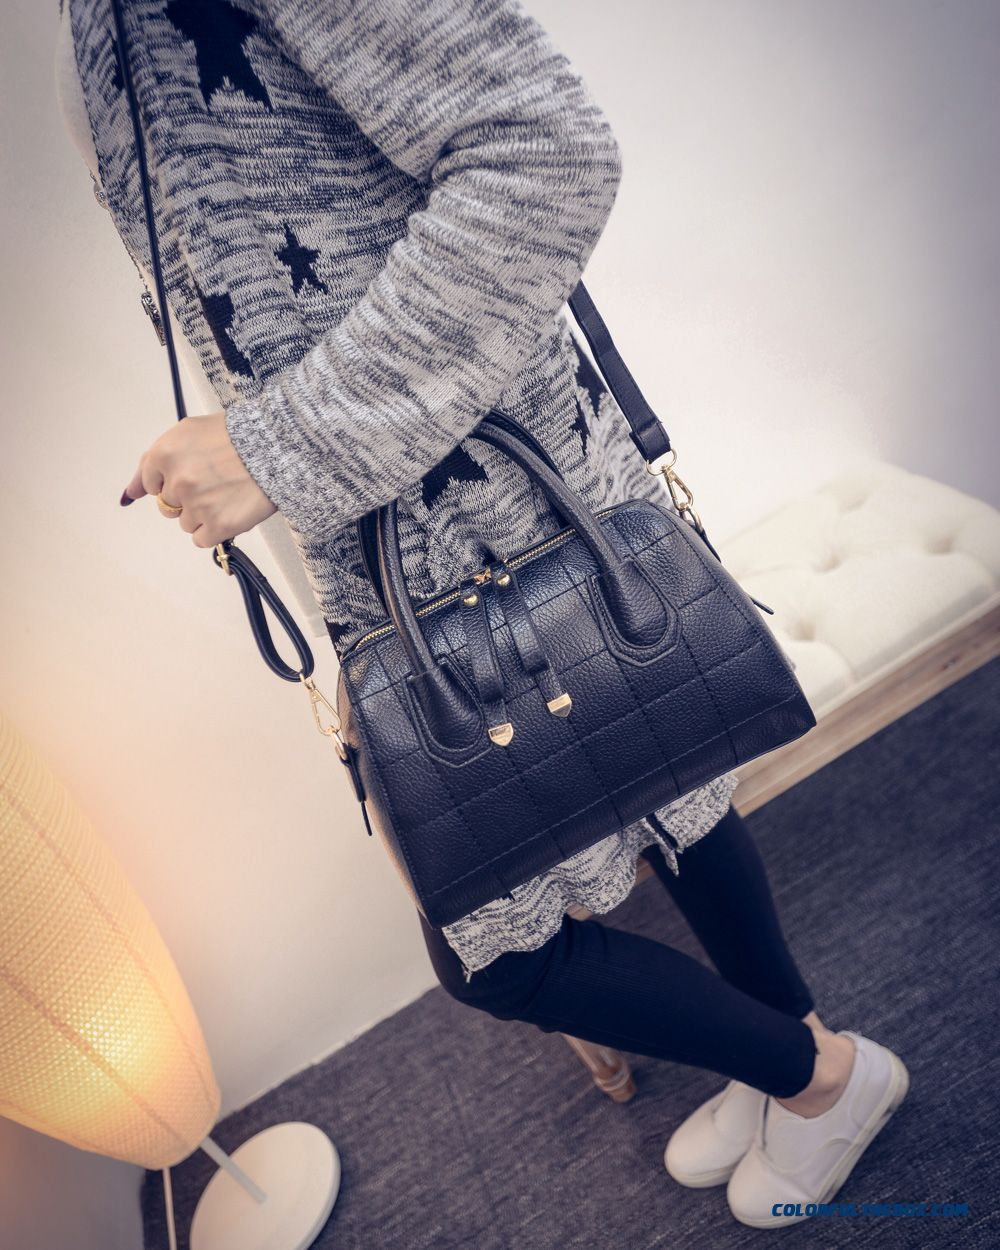 Simplicity Retro Women Bag With Double Zipper Shoulder Bags Chic - more images 2